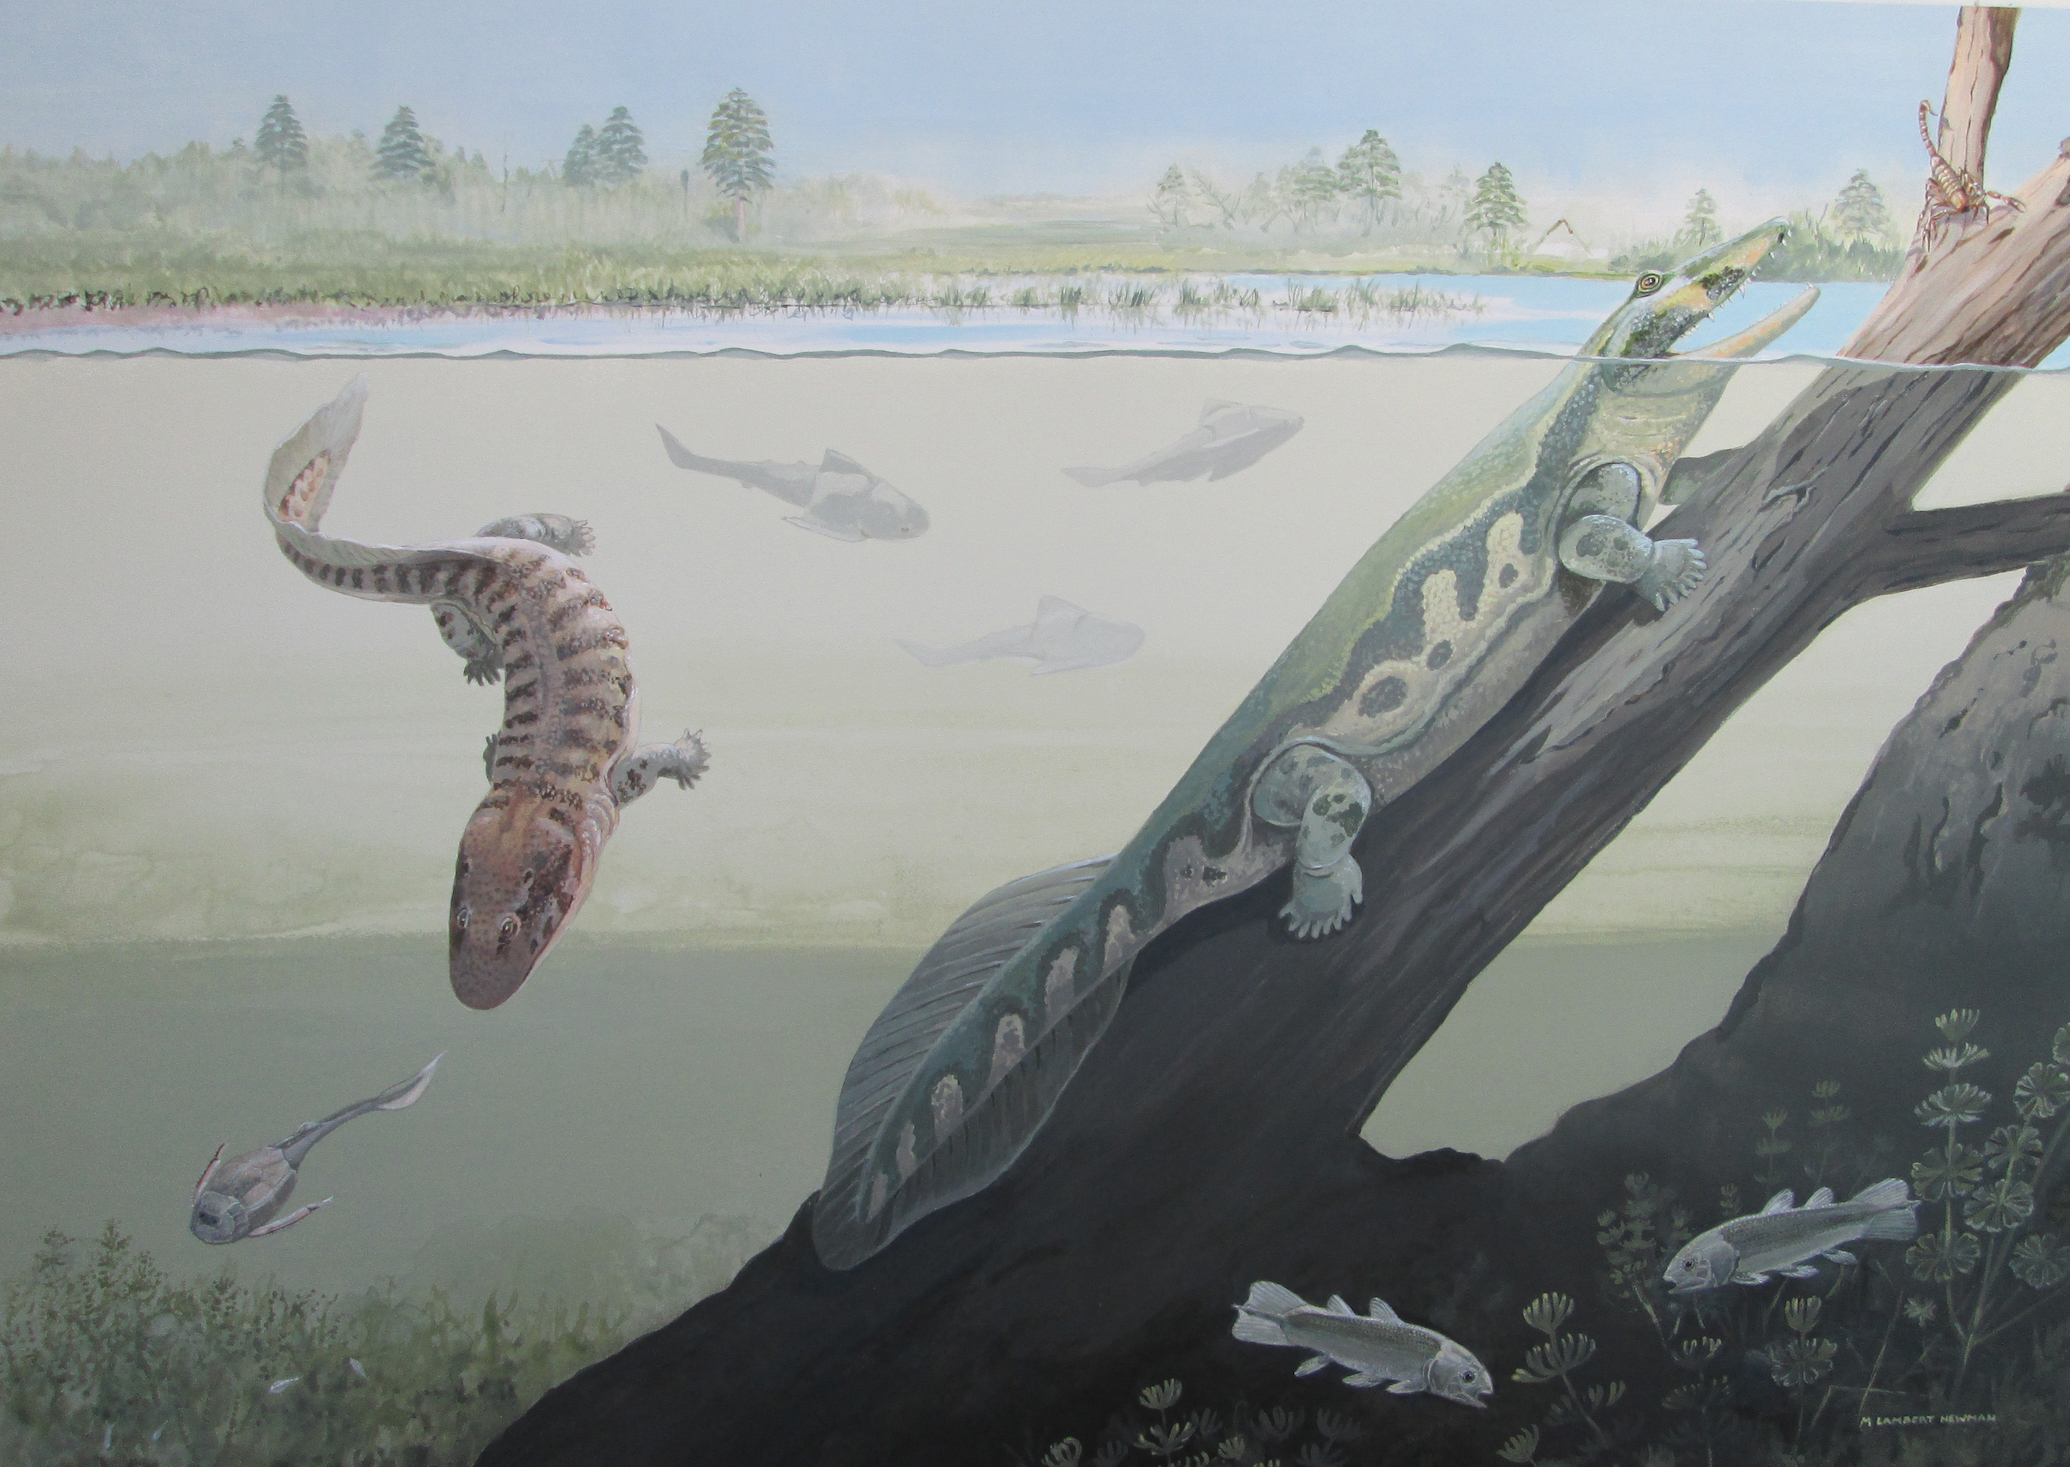 Previous fossil evidence had led researchers to believe tetrapods evolved and existed primarily in tropical regions. But a new finding shows that they were widespread, and even inhabited the Antarctic Circle.